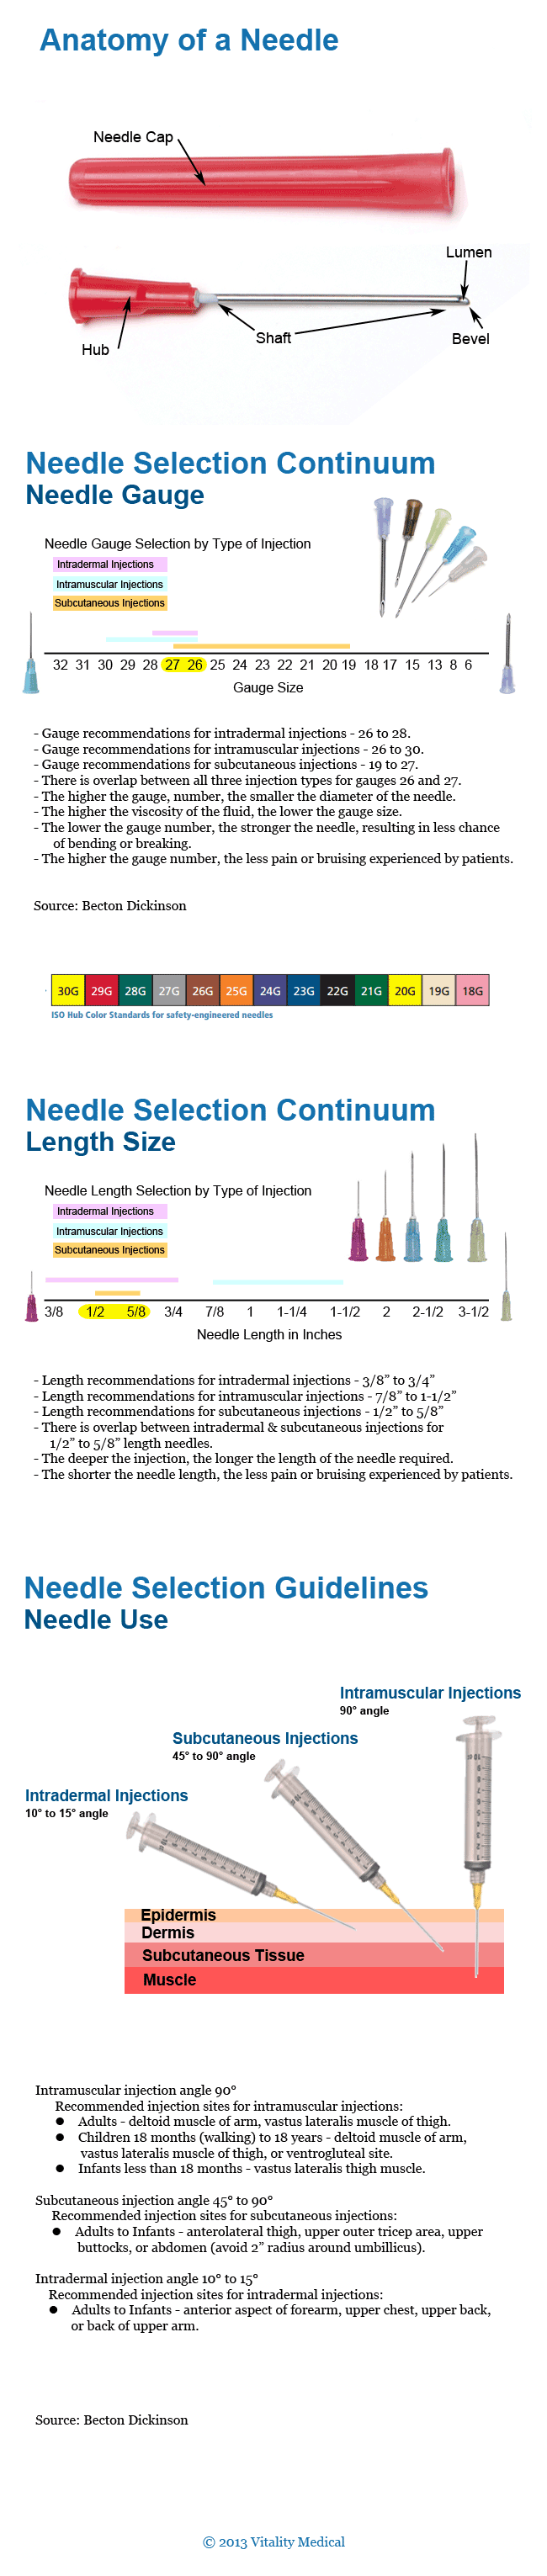 Choose the Right Needle - Needle Selection Criteria Infographic